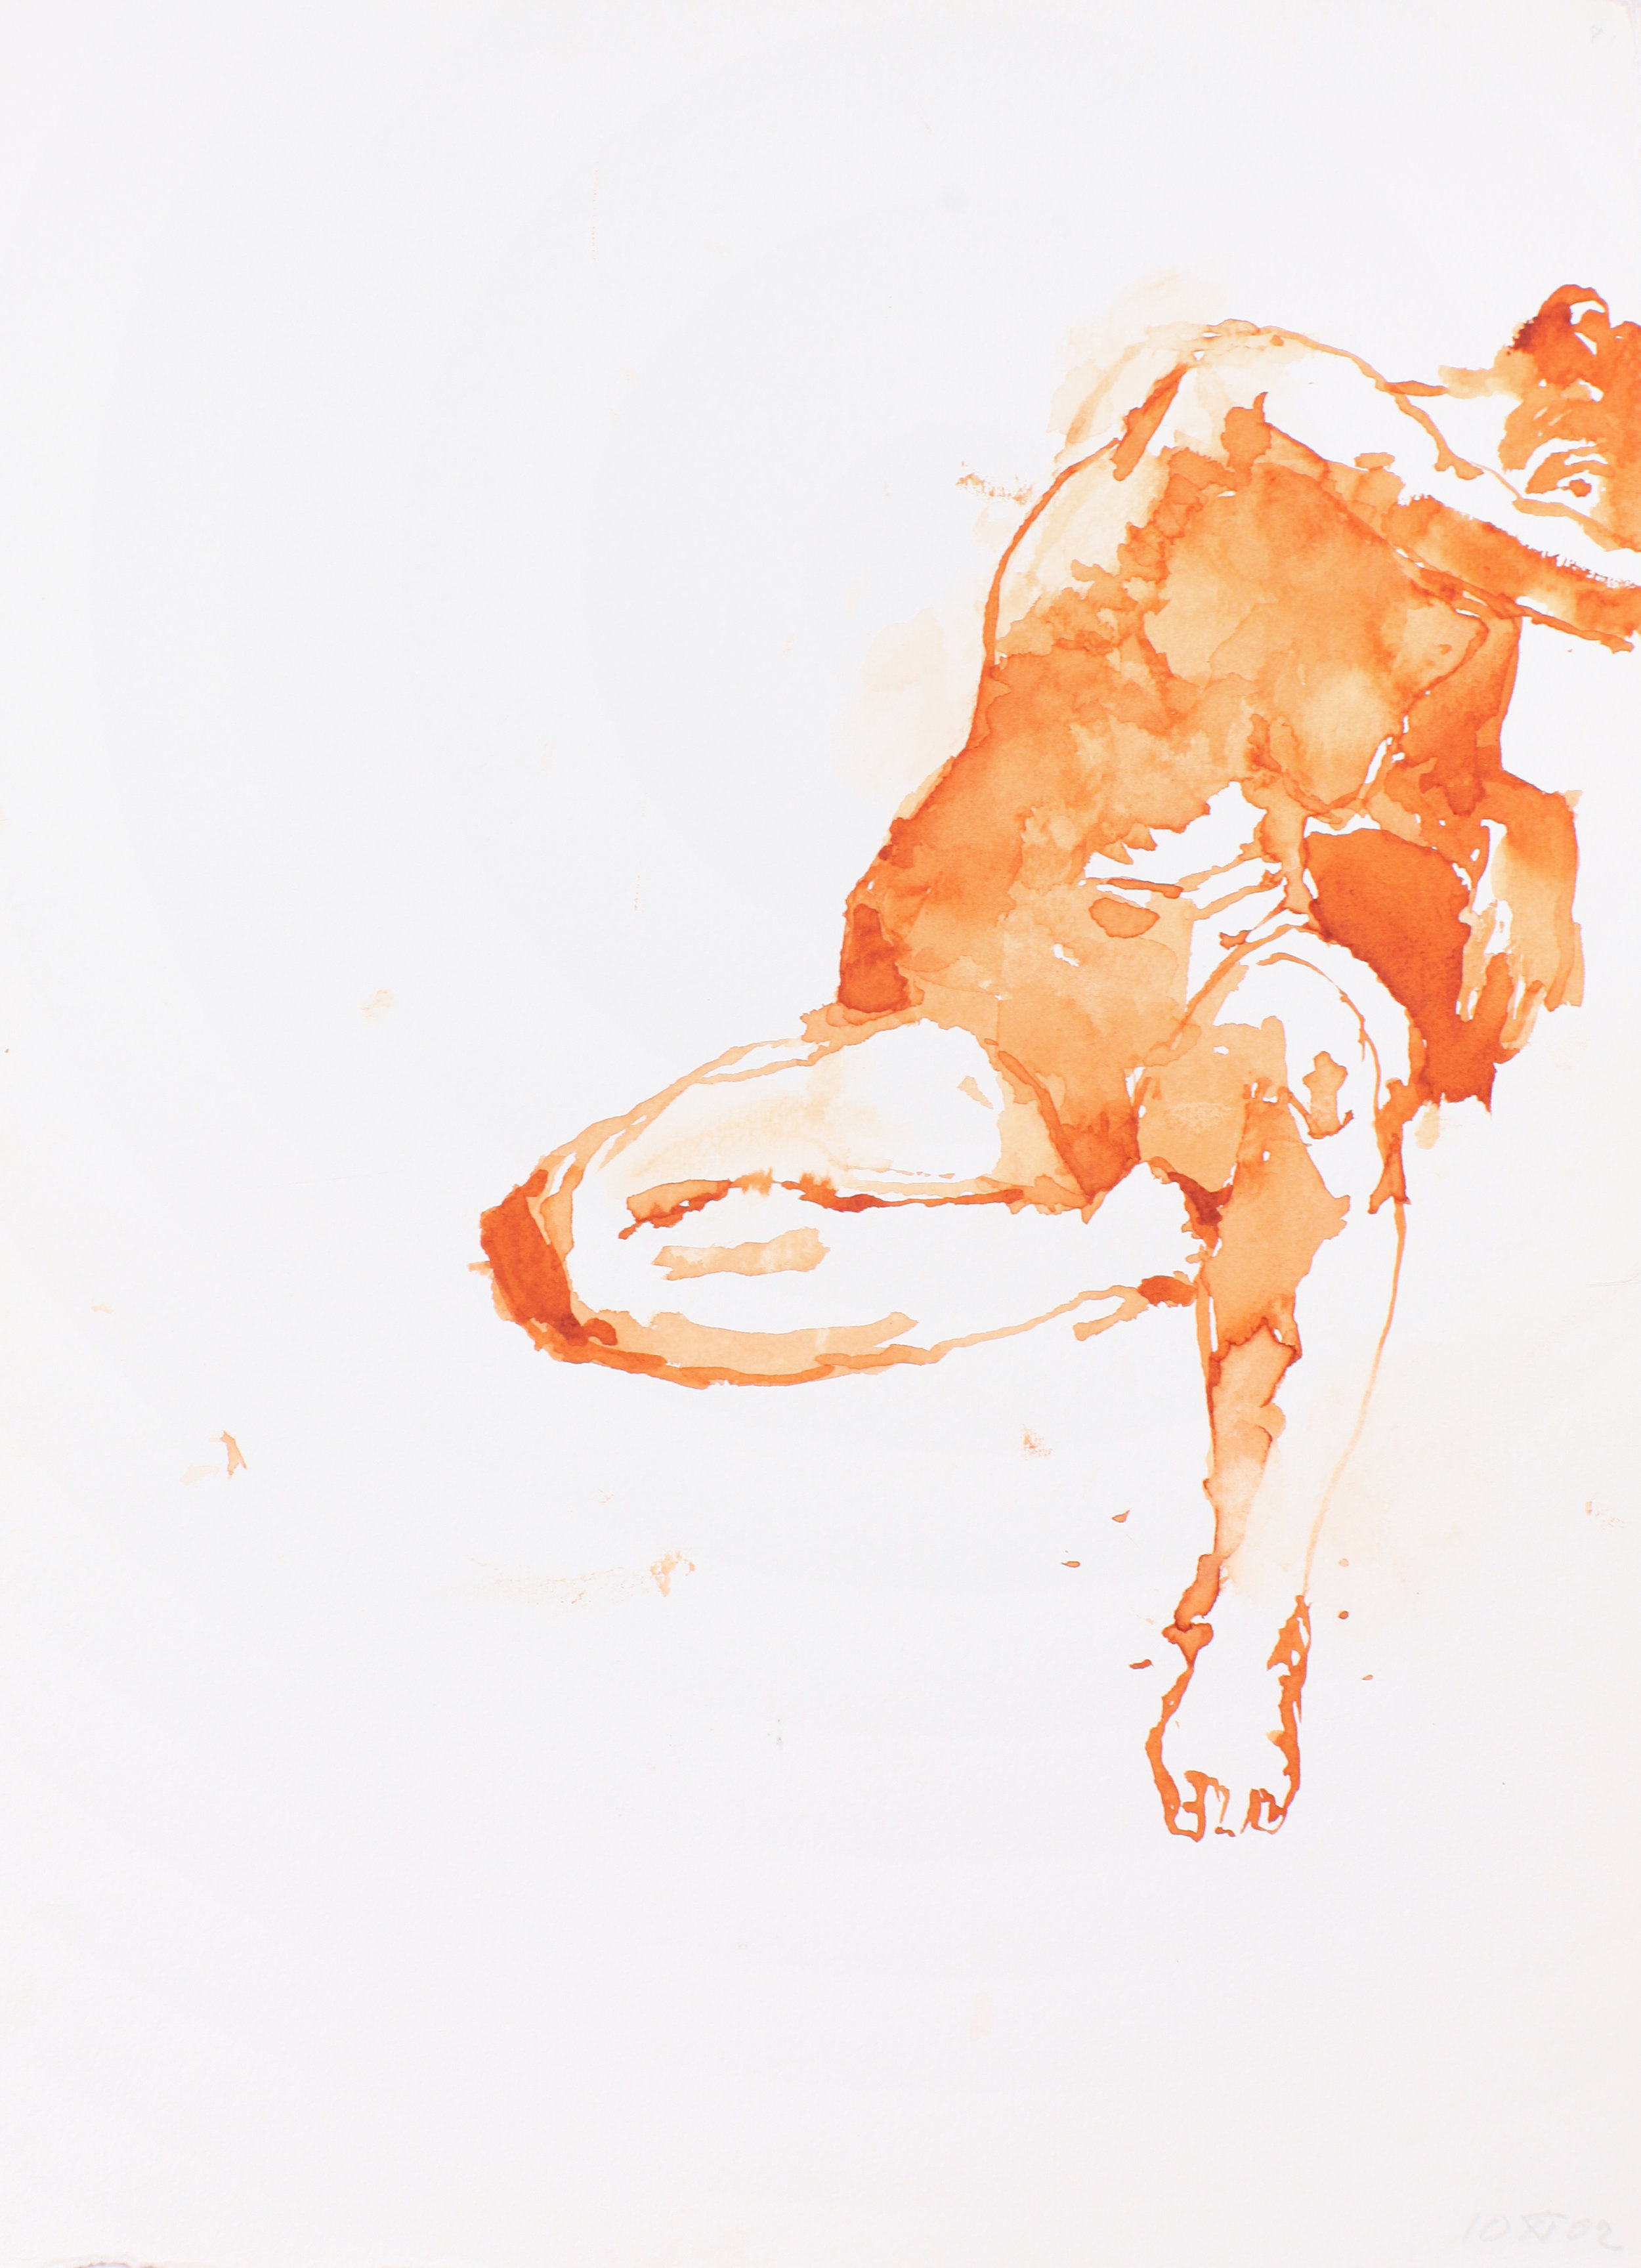 2002_Seated_Nude_with_extended_Left_Leg_and_Head_Turned_Right_watercolour_on_paper_15x11in_WPF215.jpg